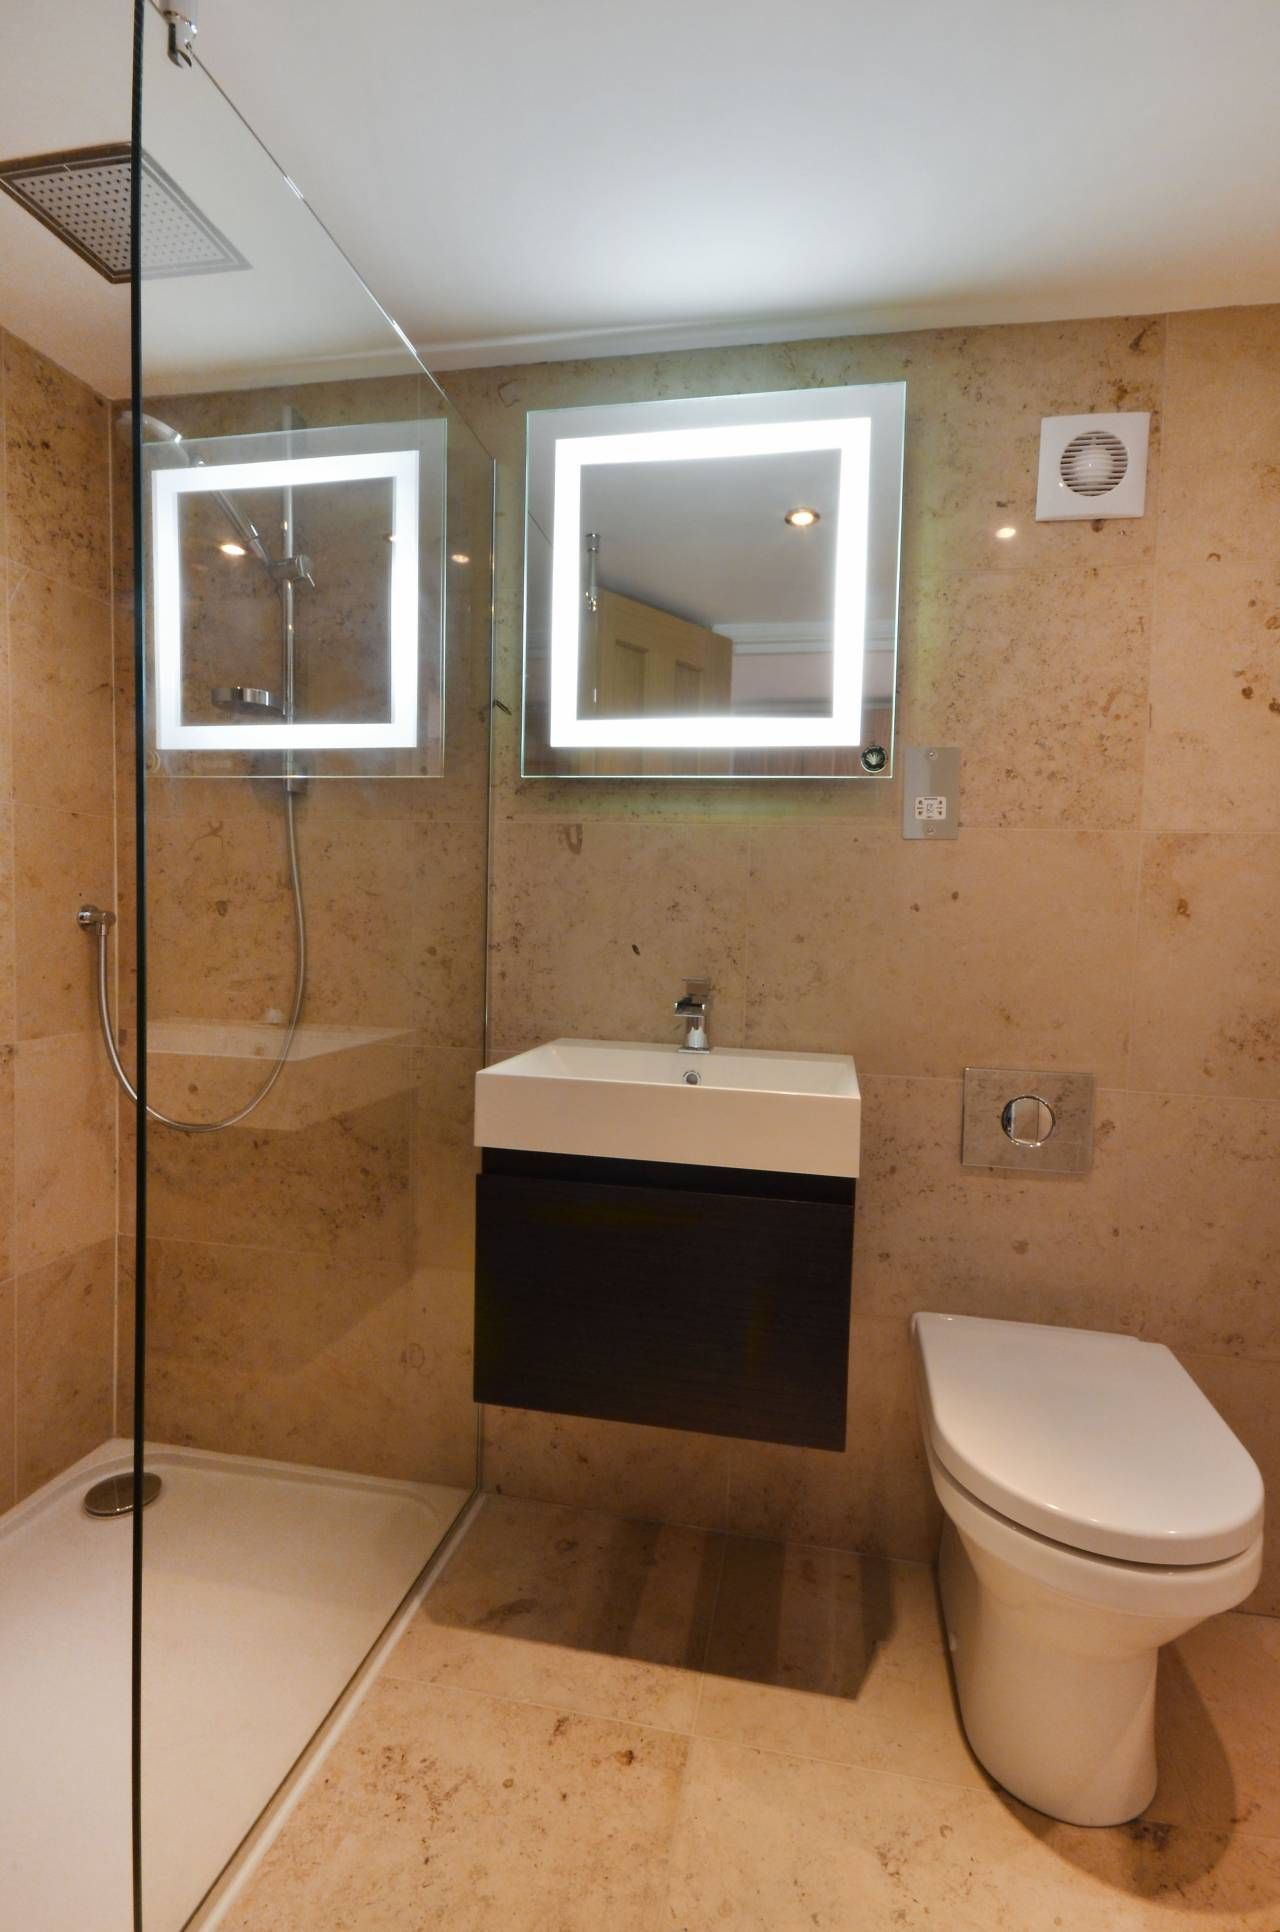 En suite shower room a walk in shower nicely tiled for Small ensuite wet room ideas